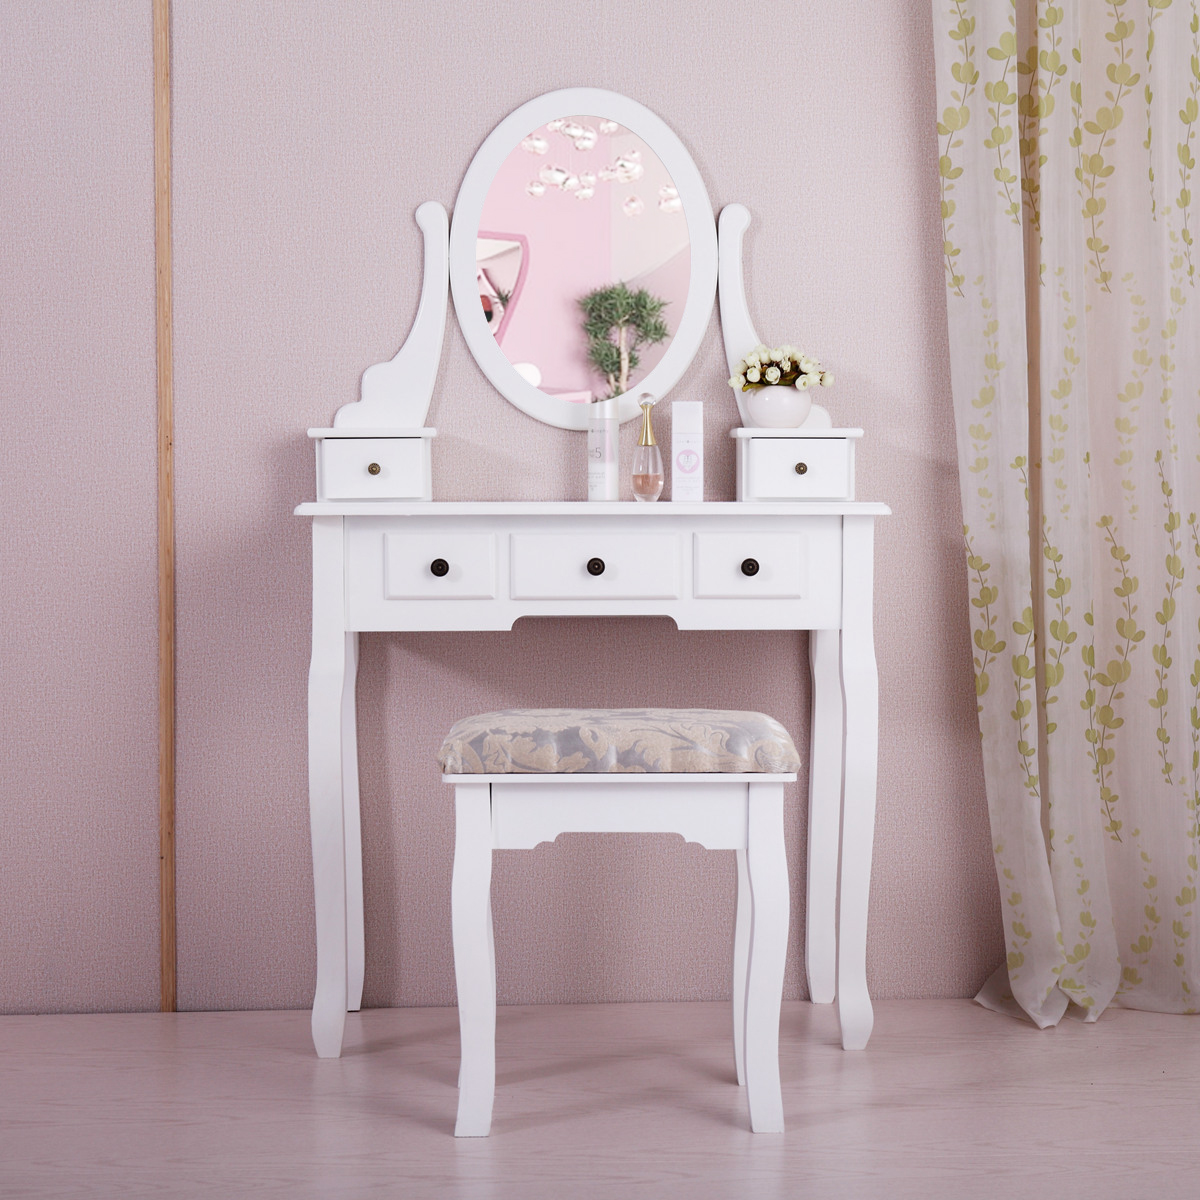 Jaxpety Wood Makeup Vanity Table Set W/ Oval Mirror And Stool Bedroom Dressing  Table Jewelry